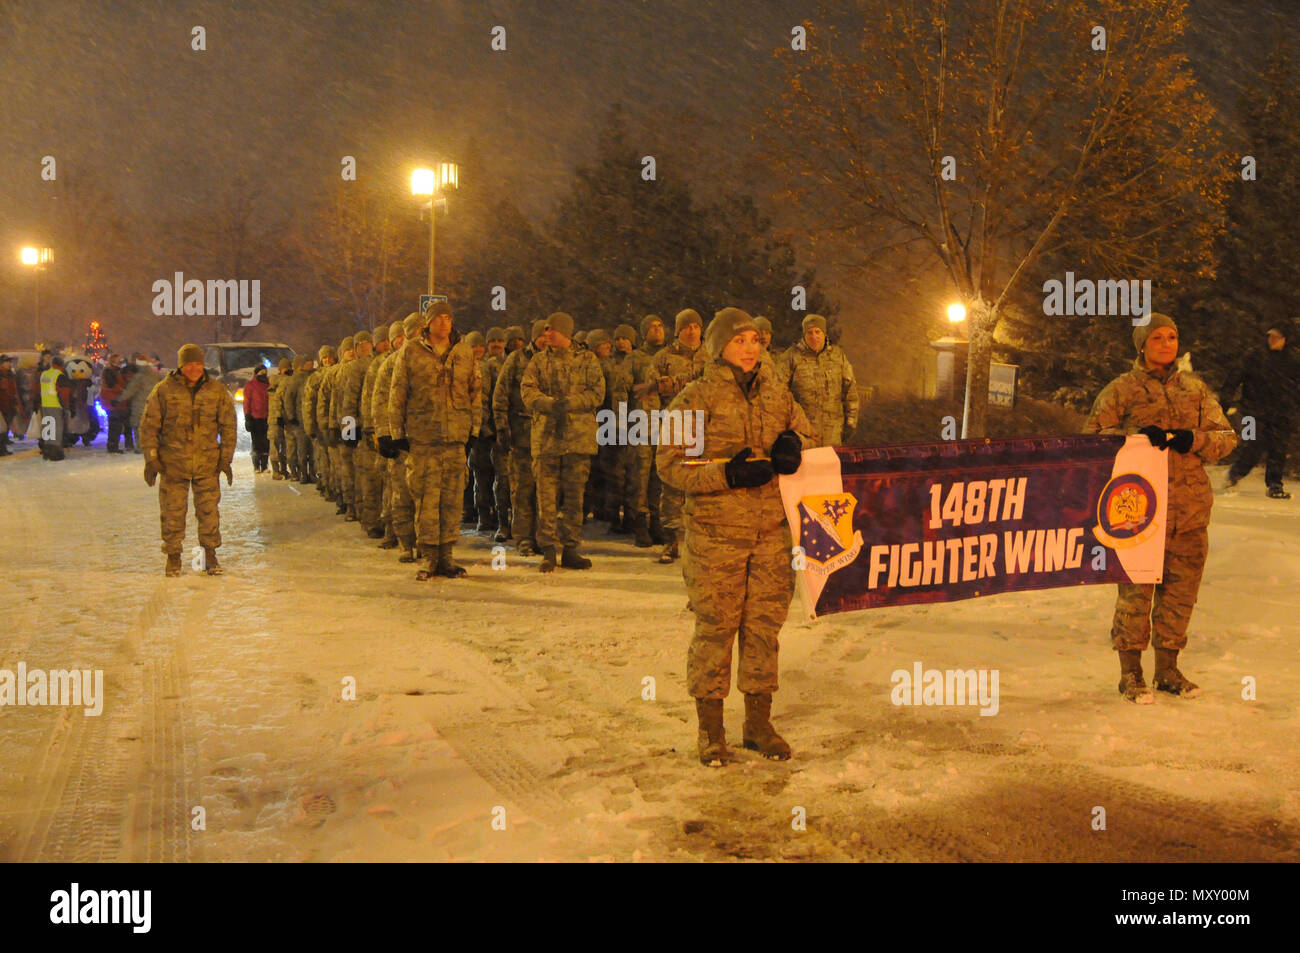 us air force airmen 148th fighter wing duluth minn prepare to march in the christmas city of the north parade nov 18 2016 the parade is held in - Christmas City Of The North Parade